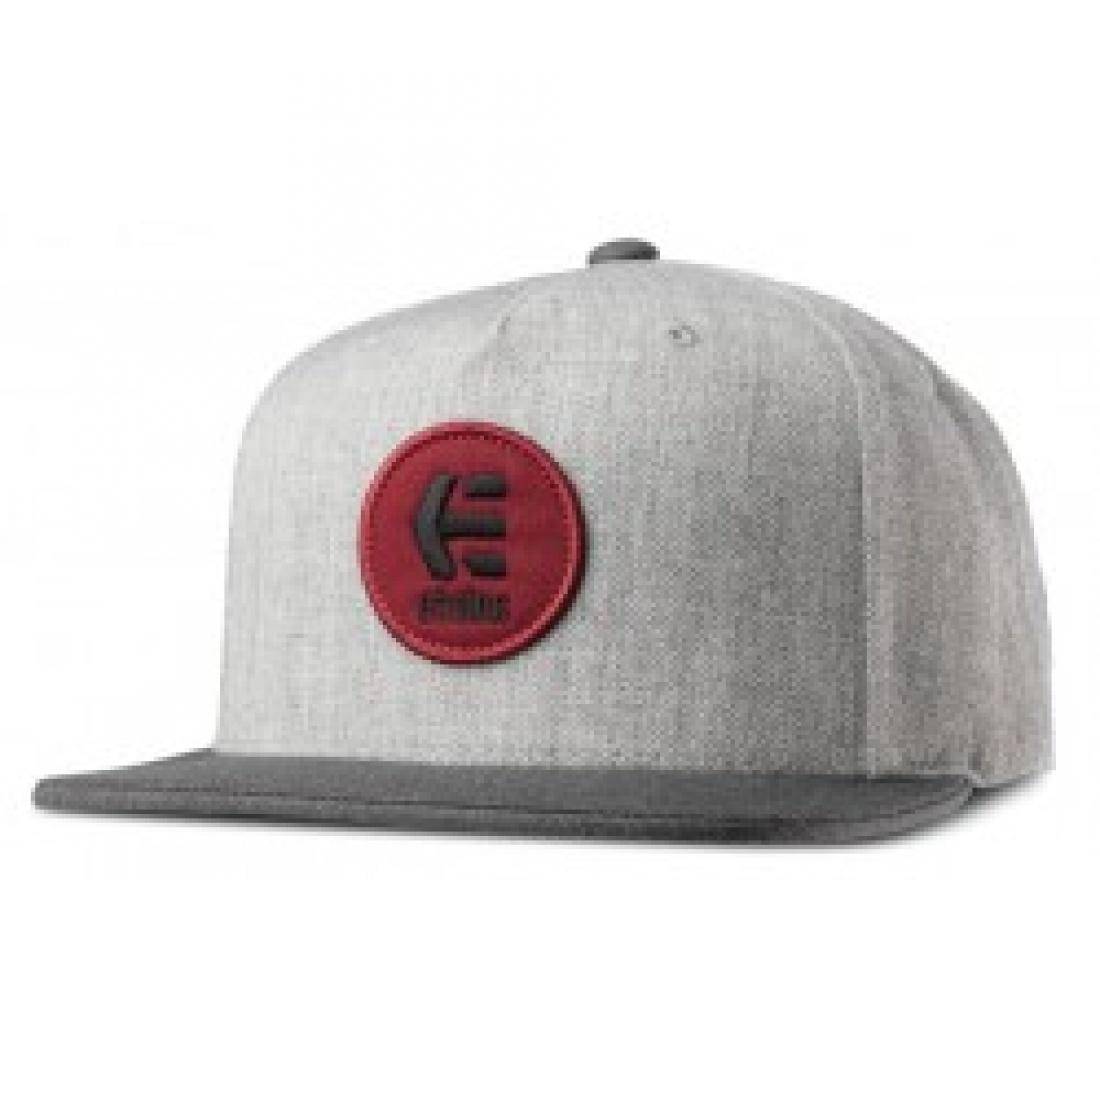 ETN-Rook Snapback Charcoal/Heather Hat